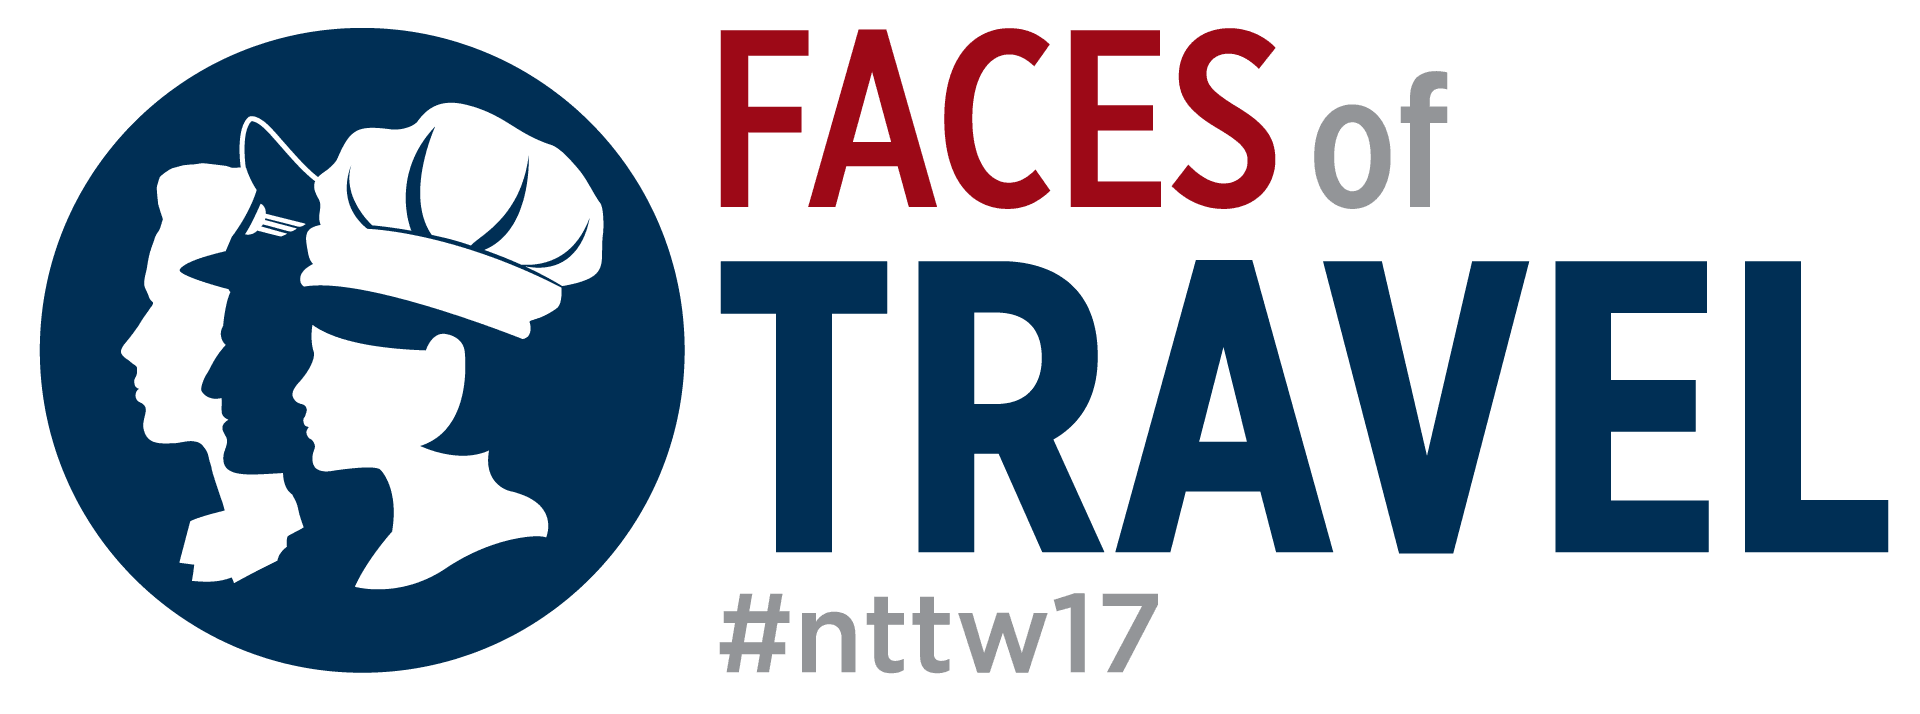 NTTW 17 Faces Logo